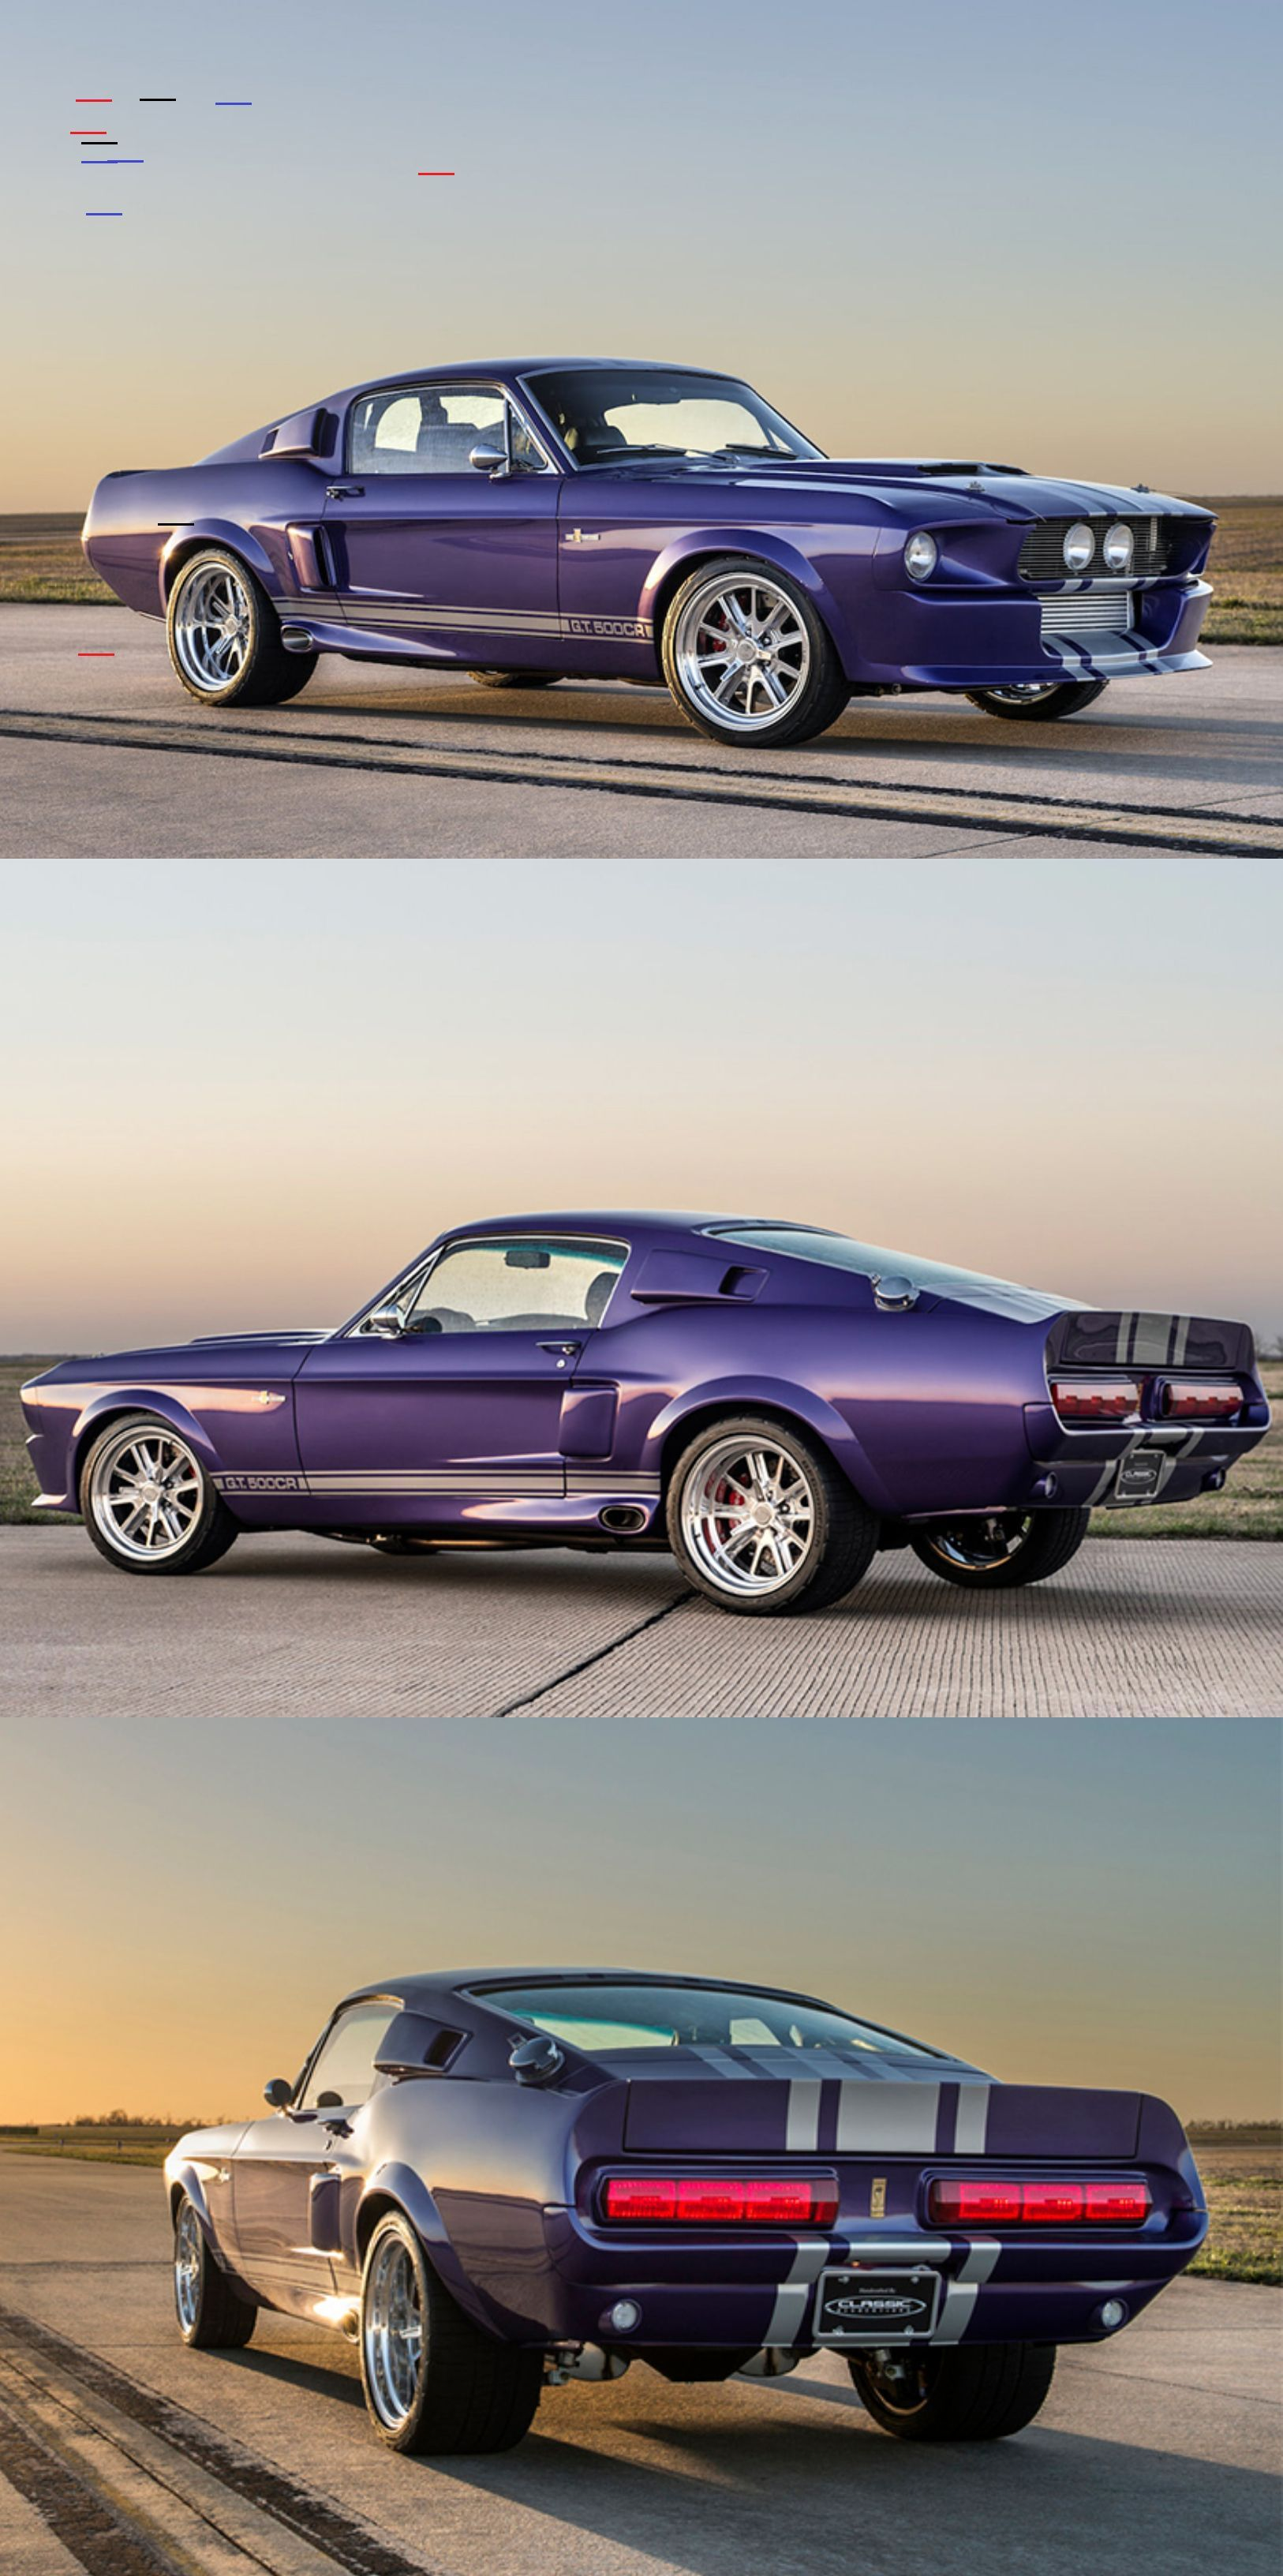 Reacoes Bts 다양한 Classic Cars Old Classic Cars Mustang Cars